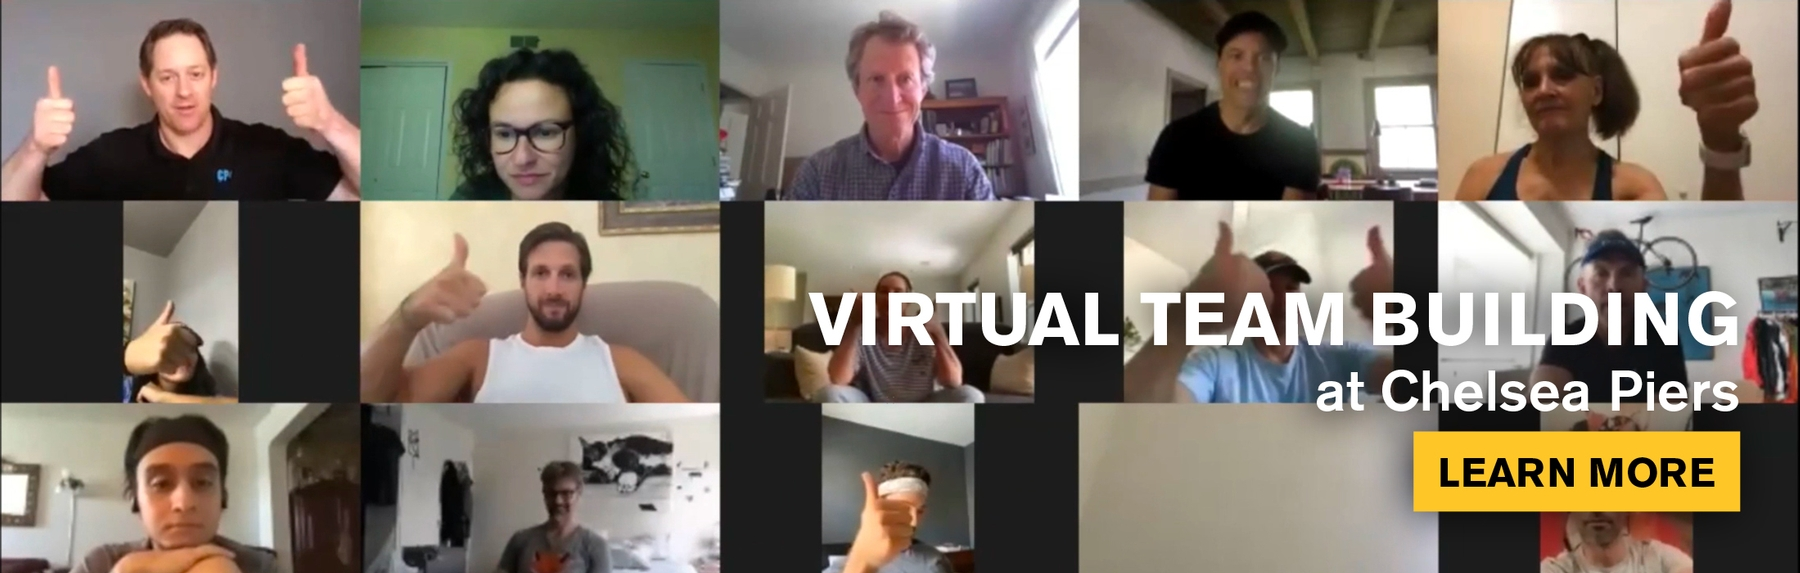 Virtual Team Building